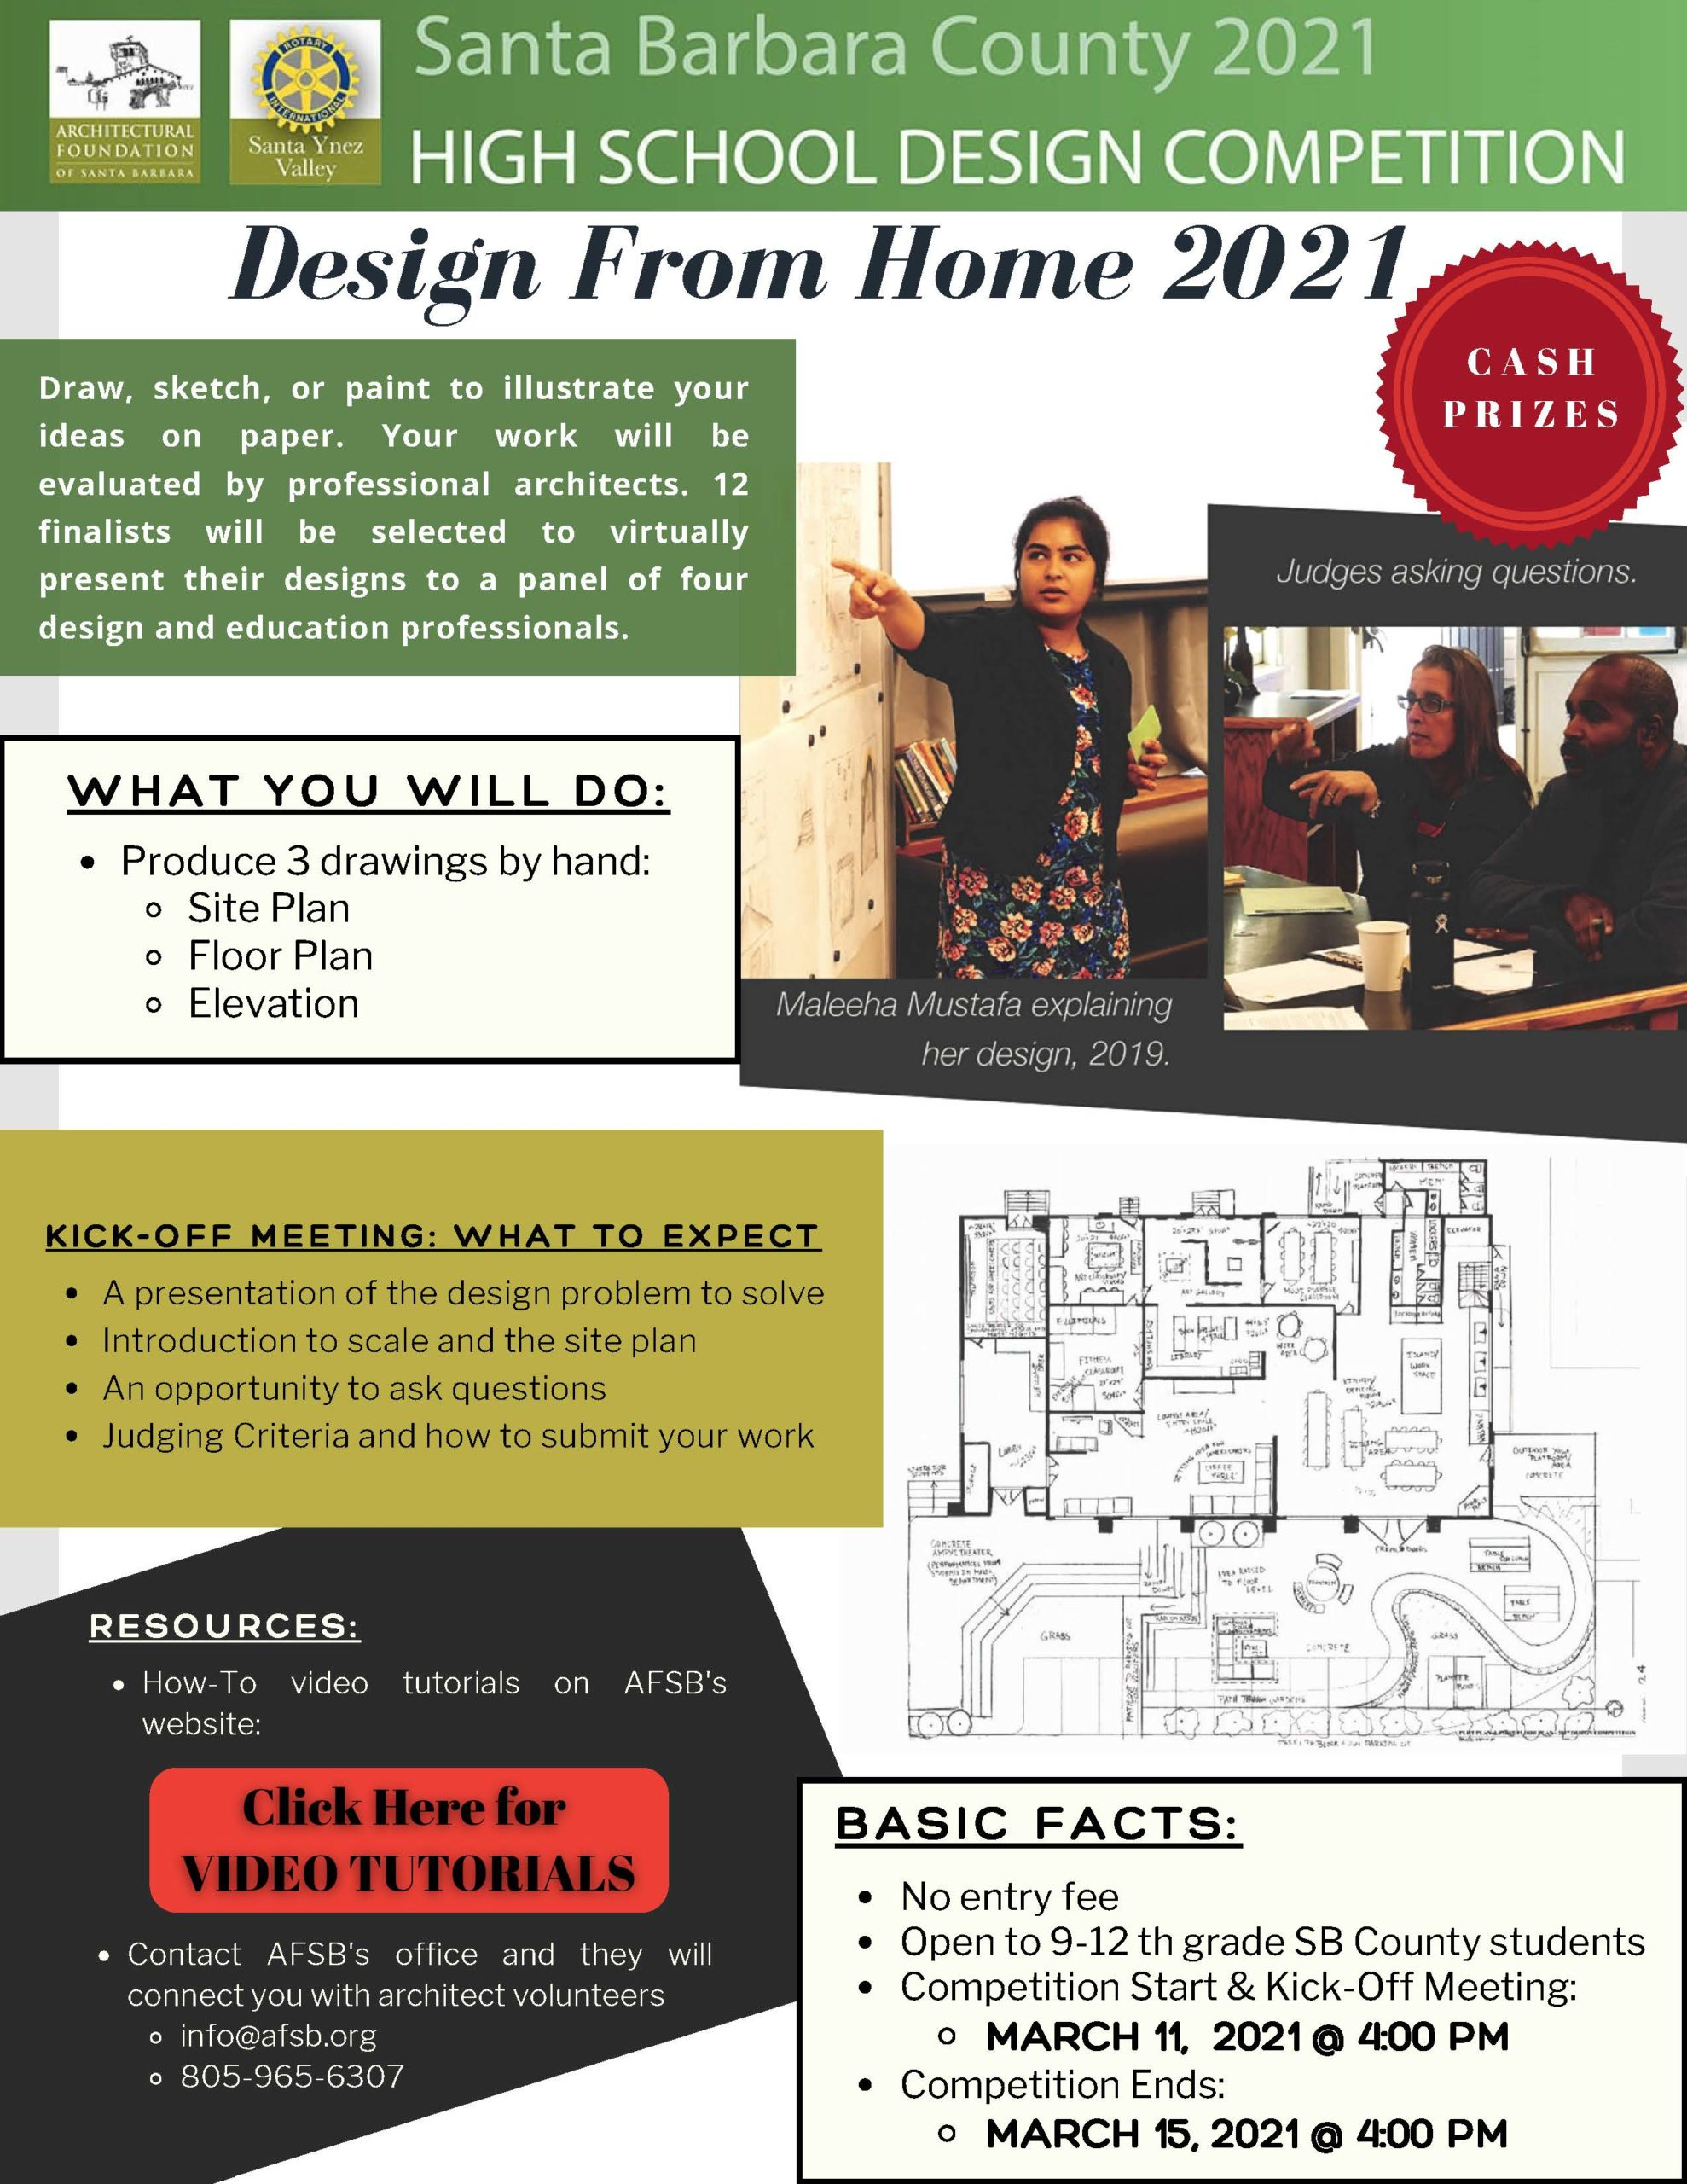 2021 HSDC Poster Jan12 - With Infographic_Page_2